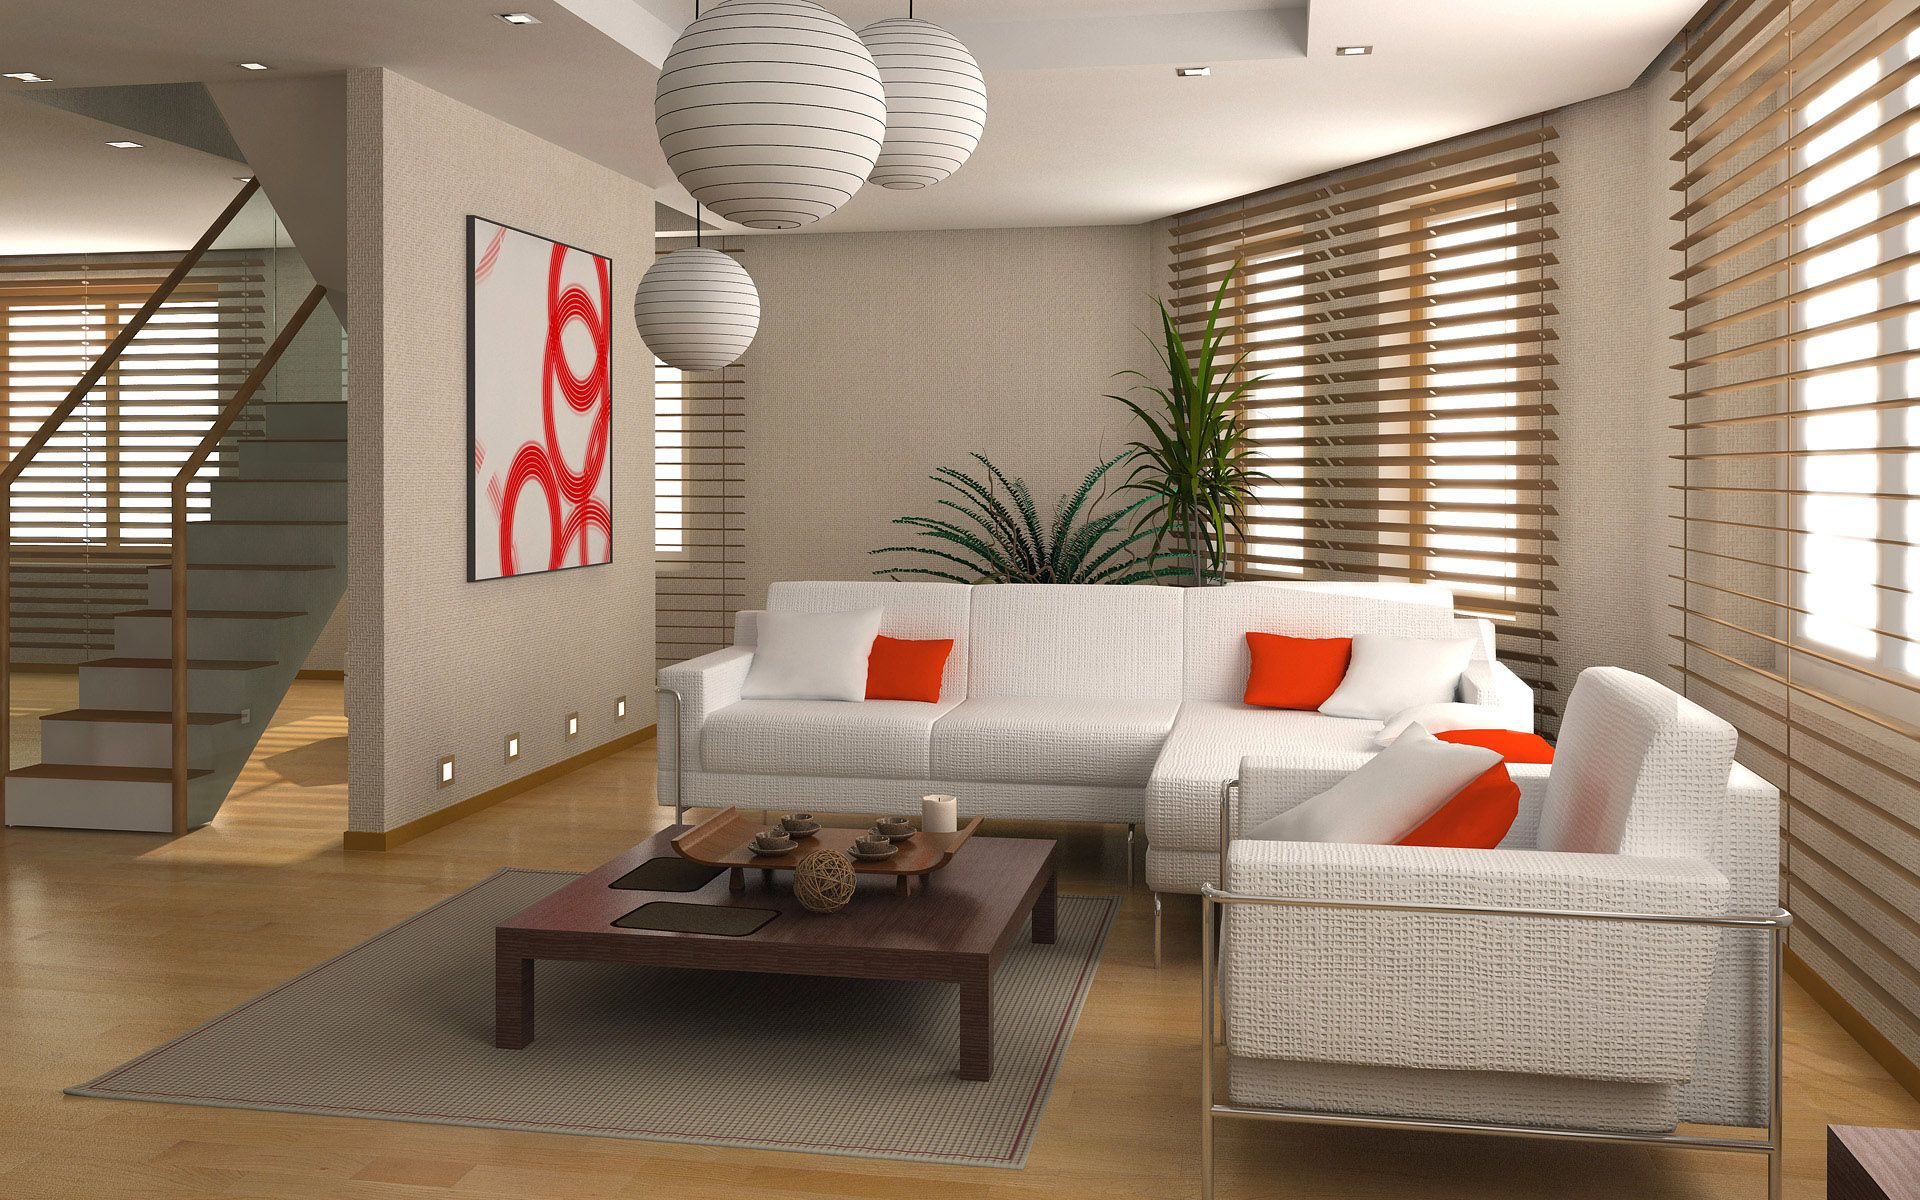 Free Living Room Design Download Living Room Design Interior Wallpapersdownload Free